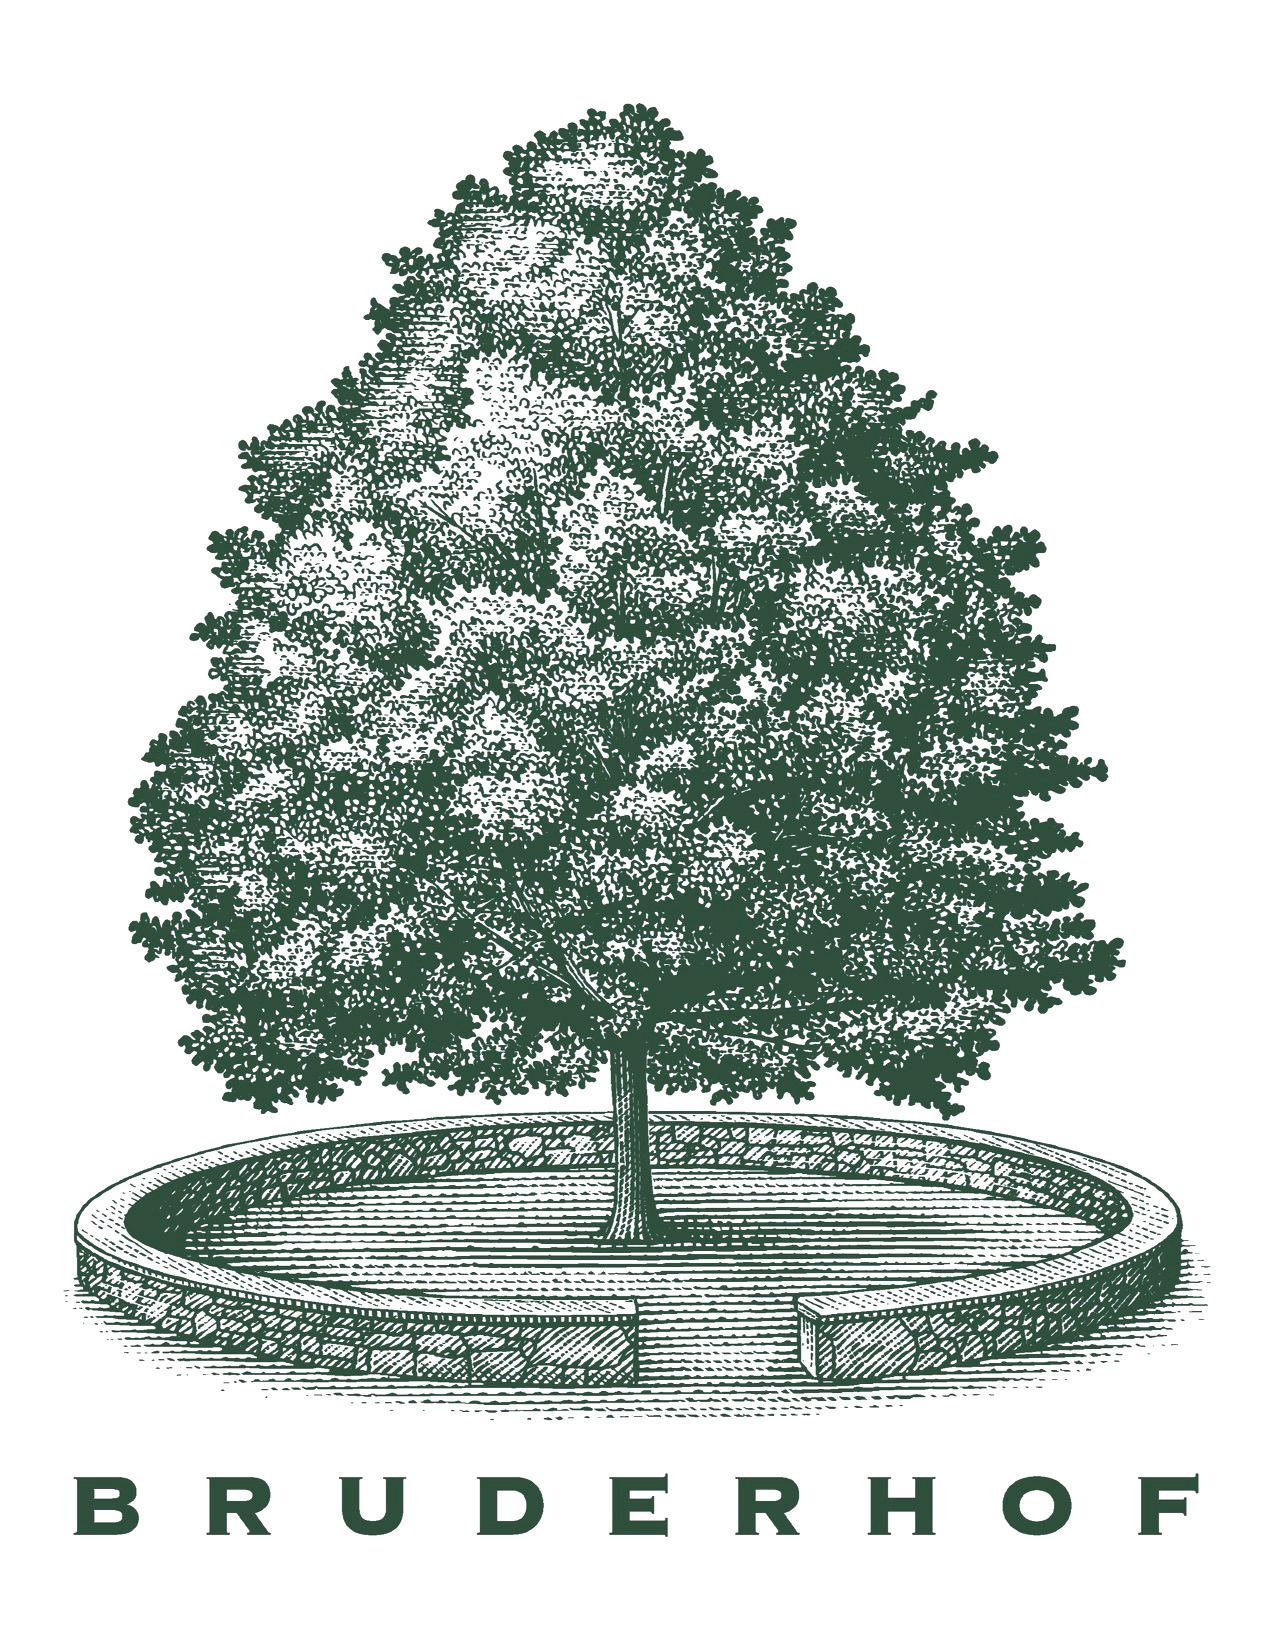 Tree and Bruderhof logo